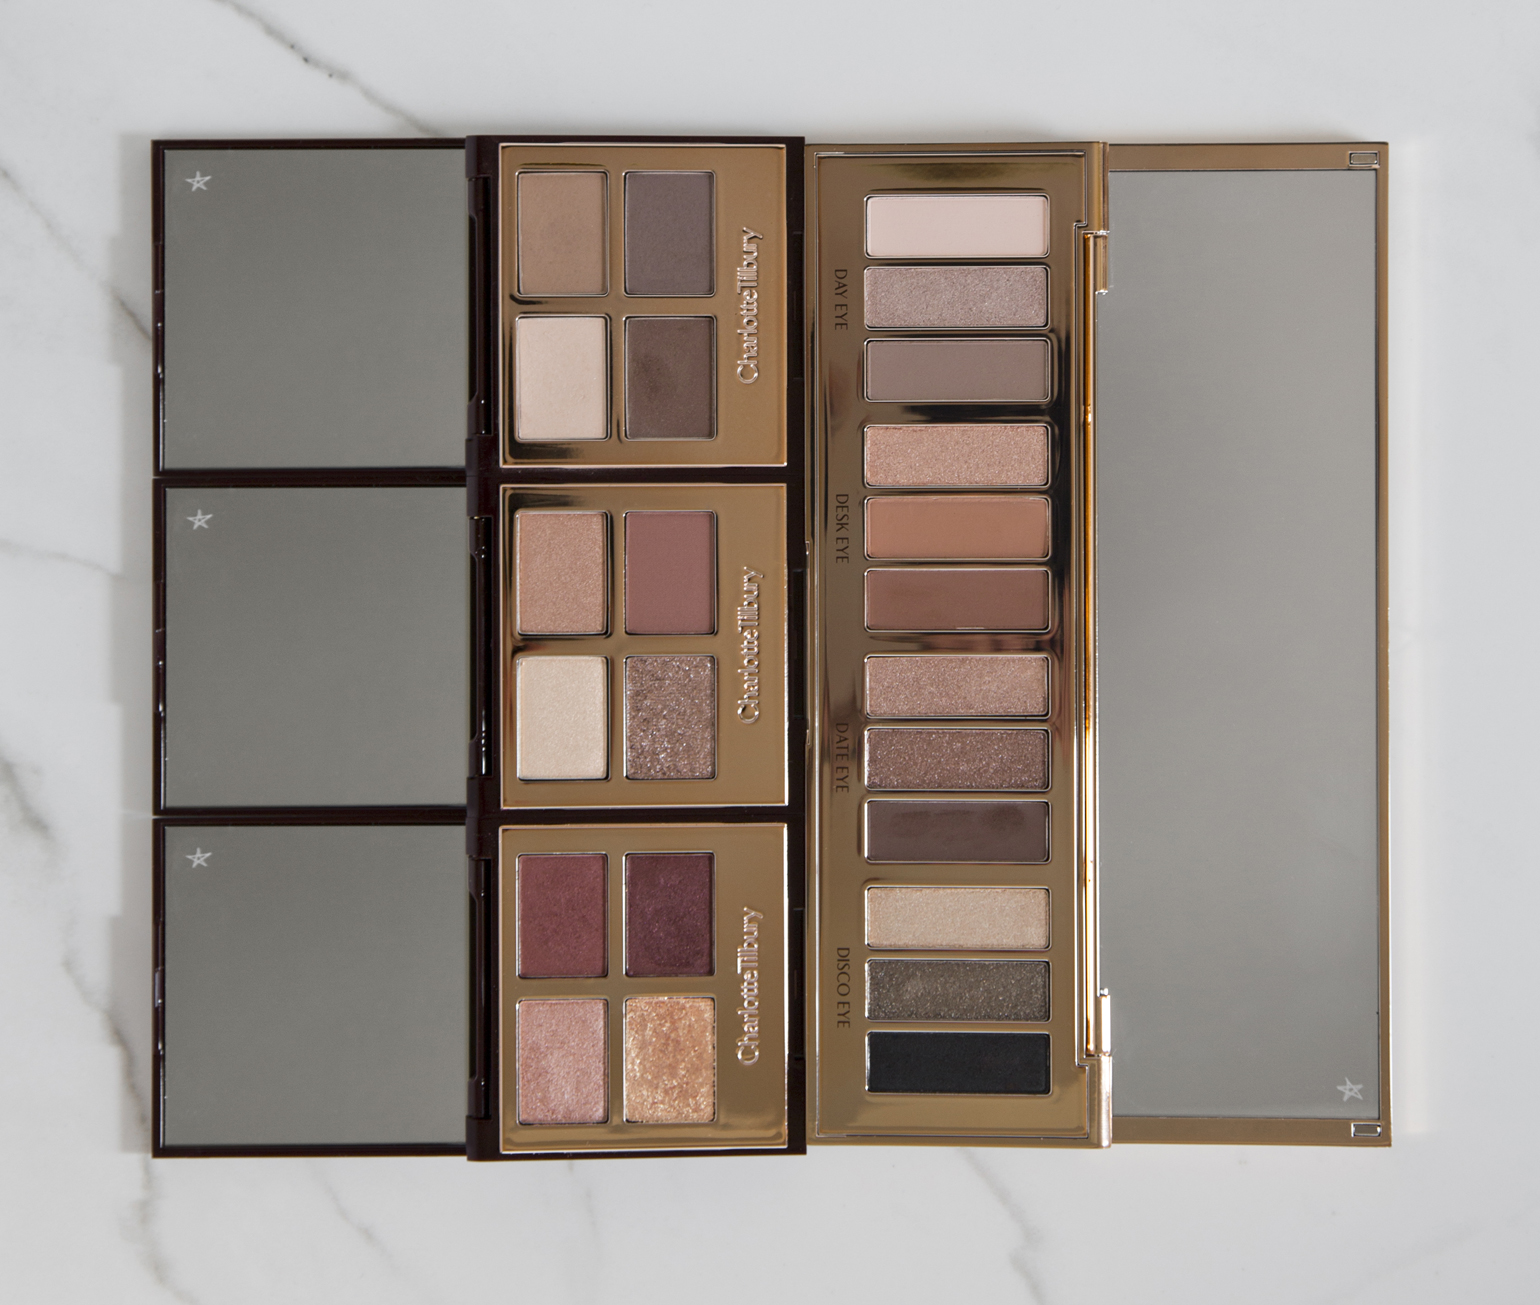 Charlotte Tilbury Eyeshadow Palette Collection.jpg